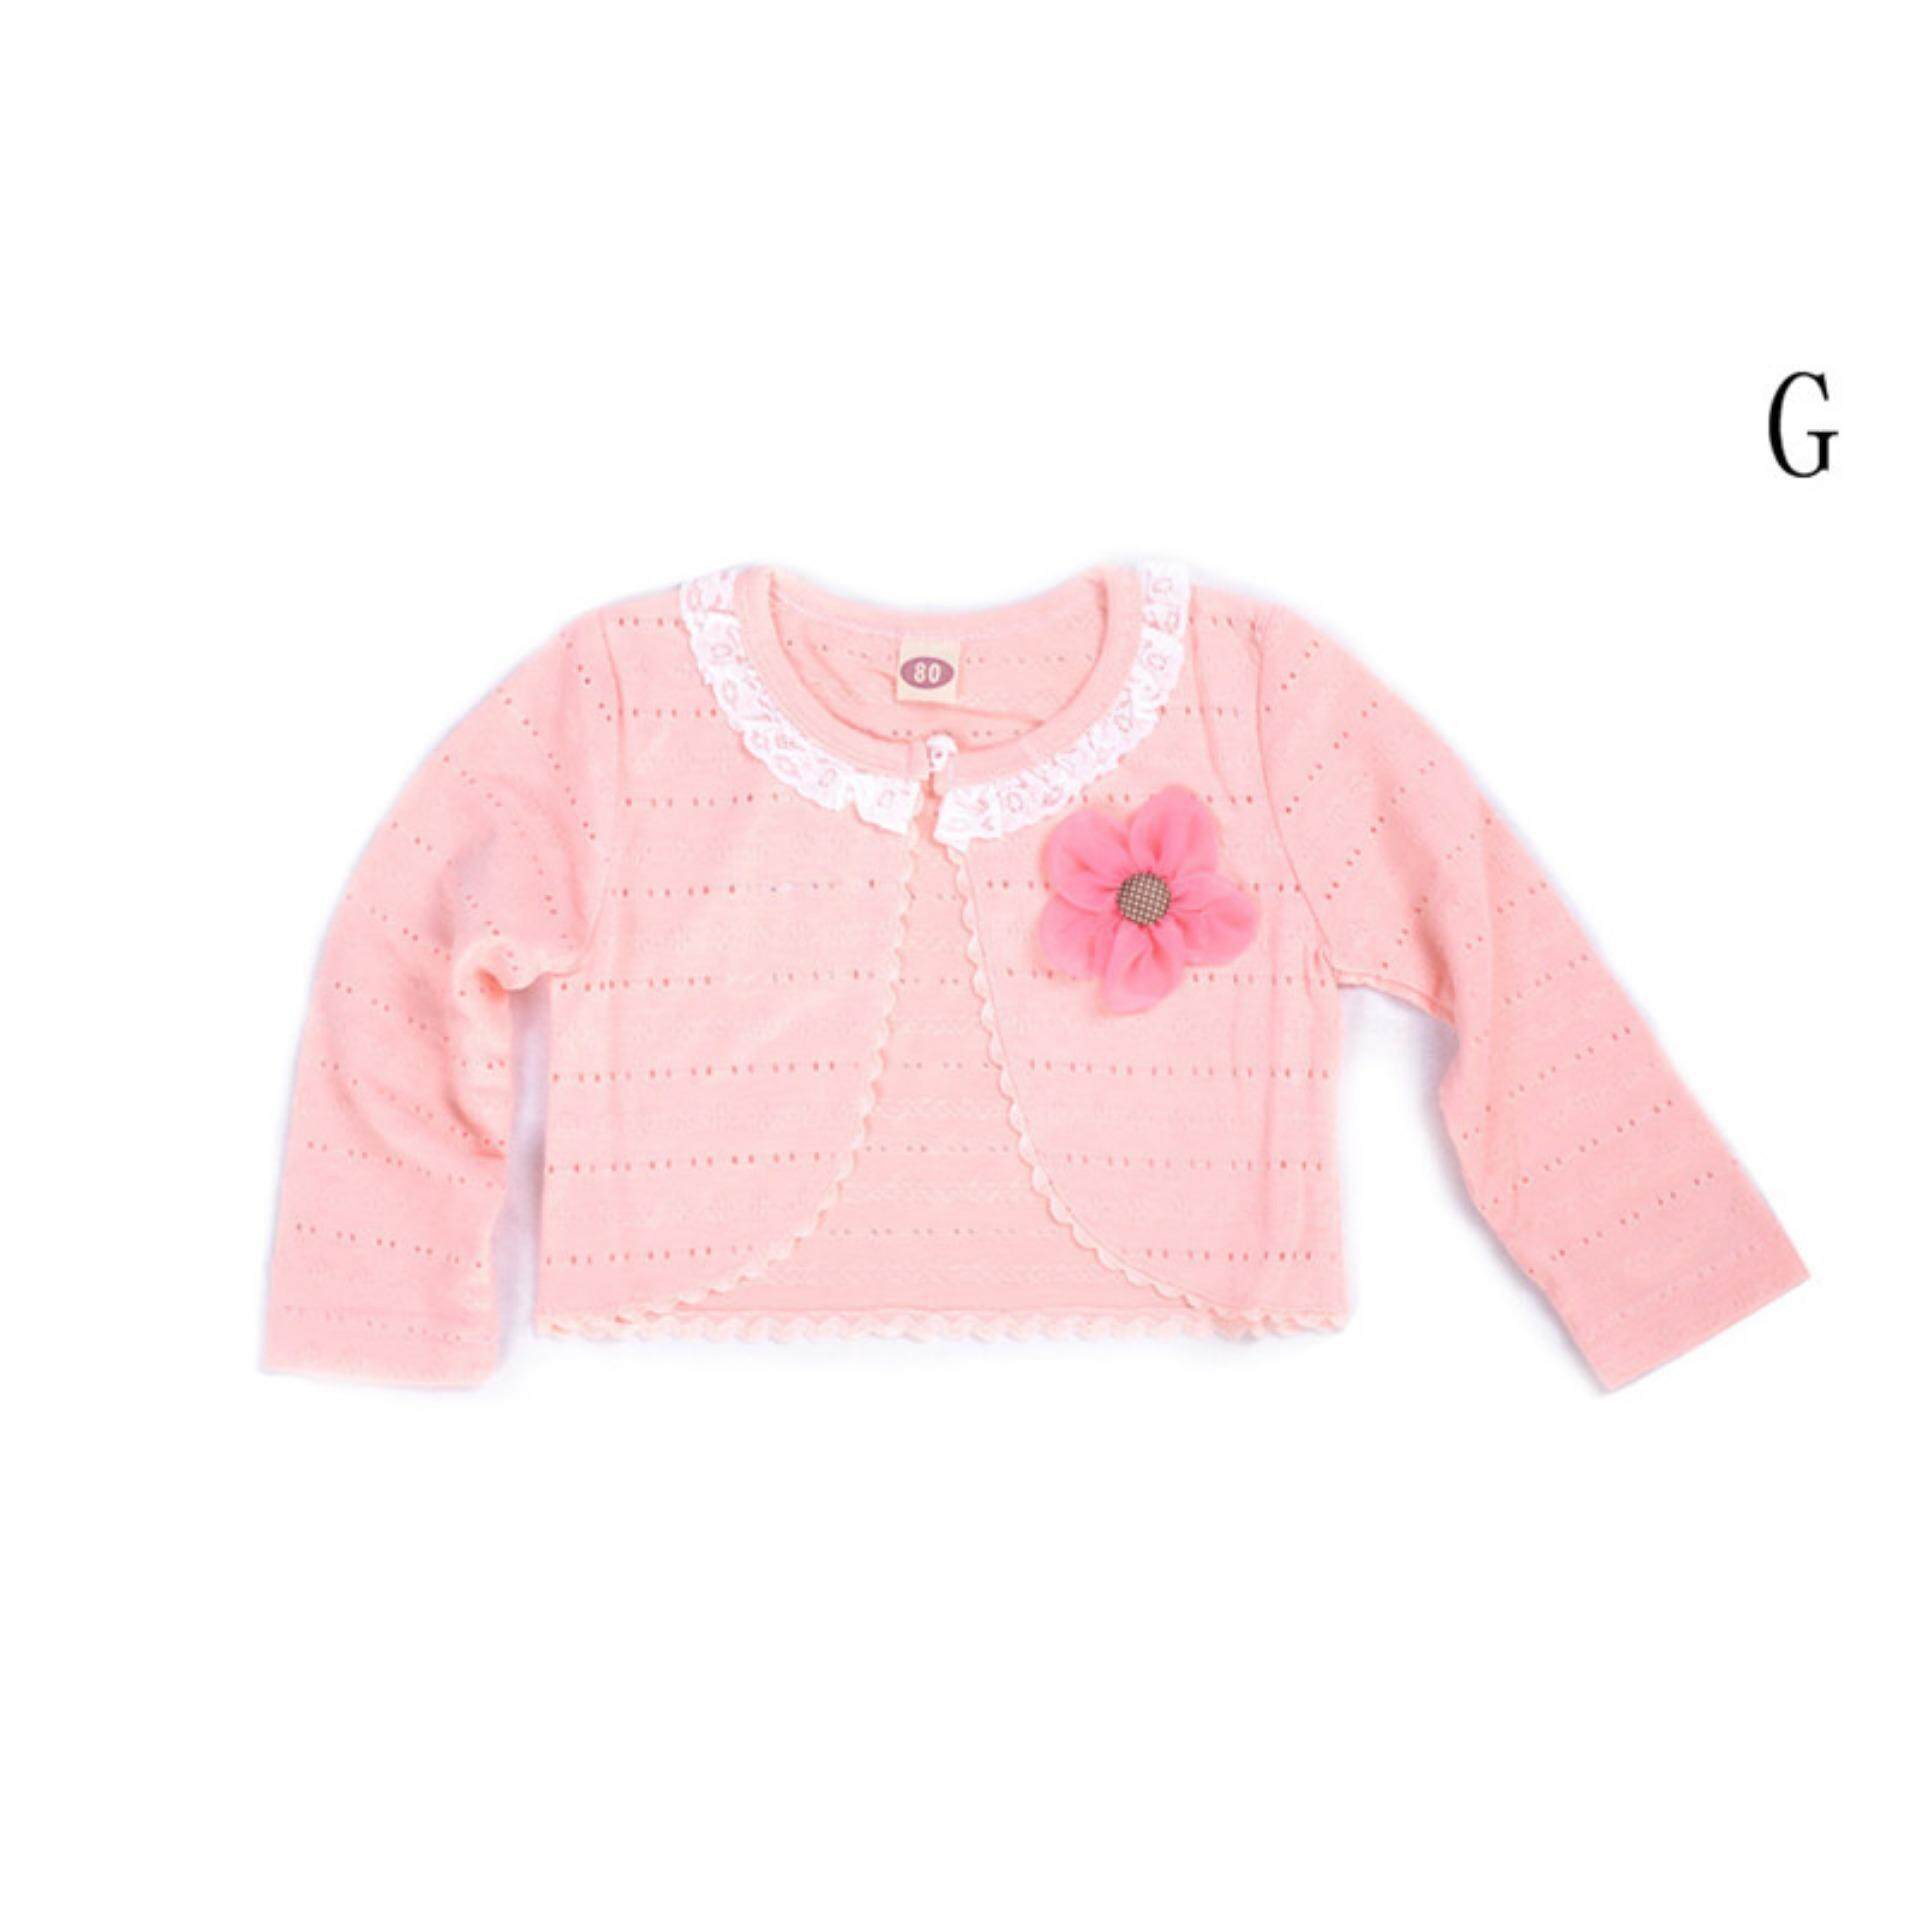 Jettingbuy 2018 New Baby Children Clothing Girls Candy Color Knitted  Cardigan Sweater Kids Spring Autumn Cotton 20df2e2e6